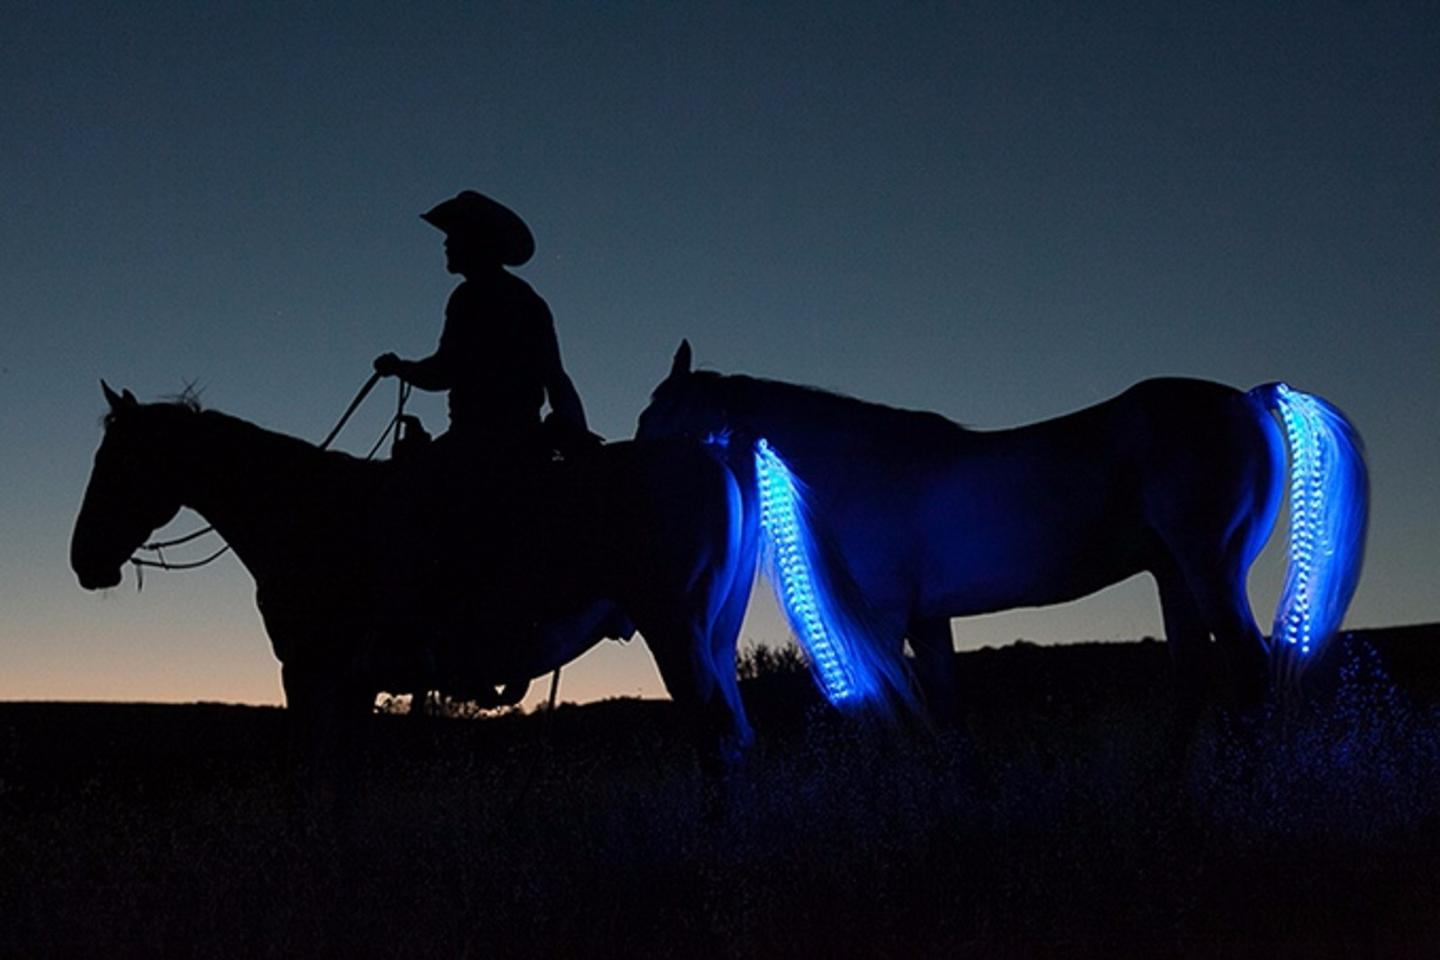 It may look showy, but the Tail Lights System is intended to warn motorists of horses in the vicinity